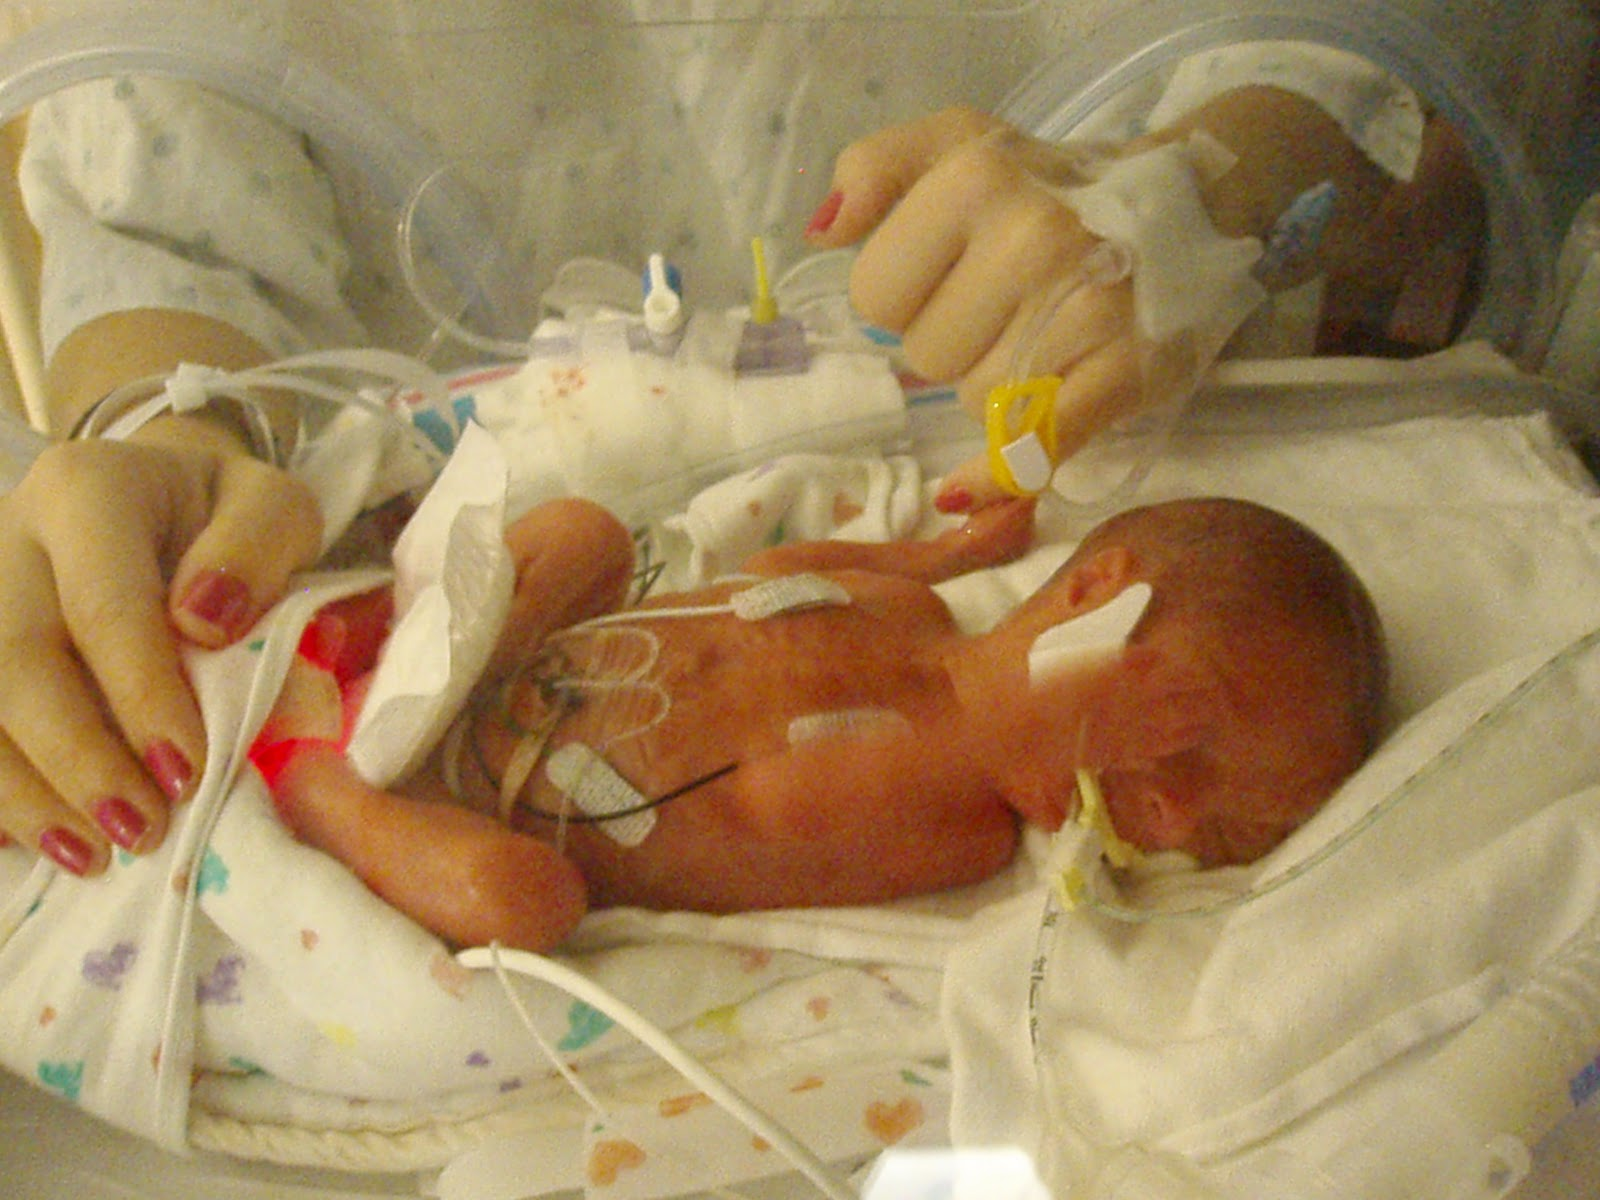 Search results for baby born at 26 weeks calendar 2015